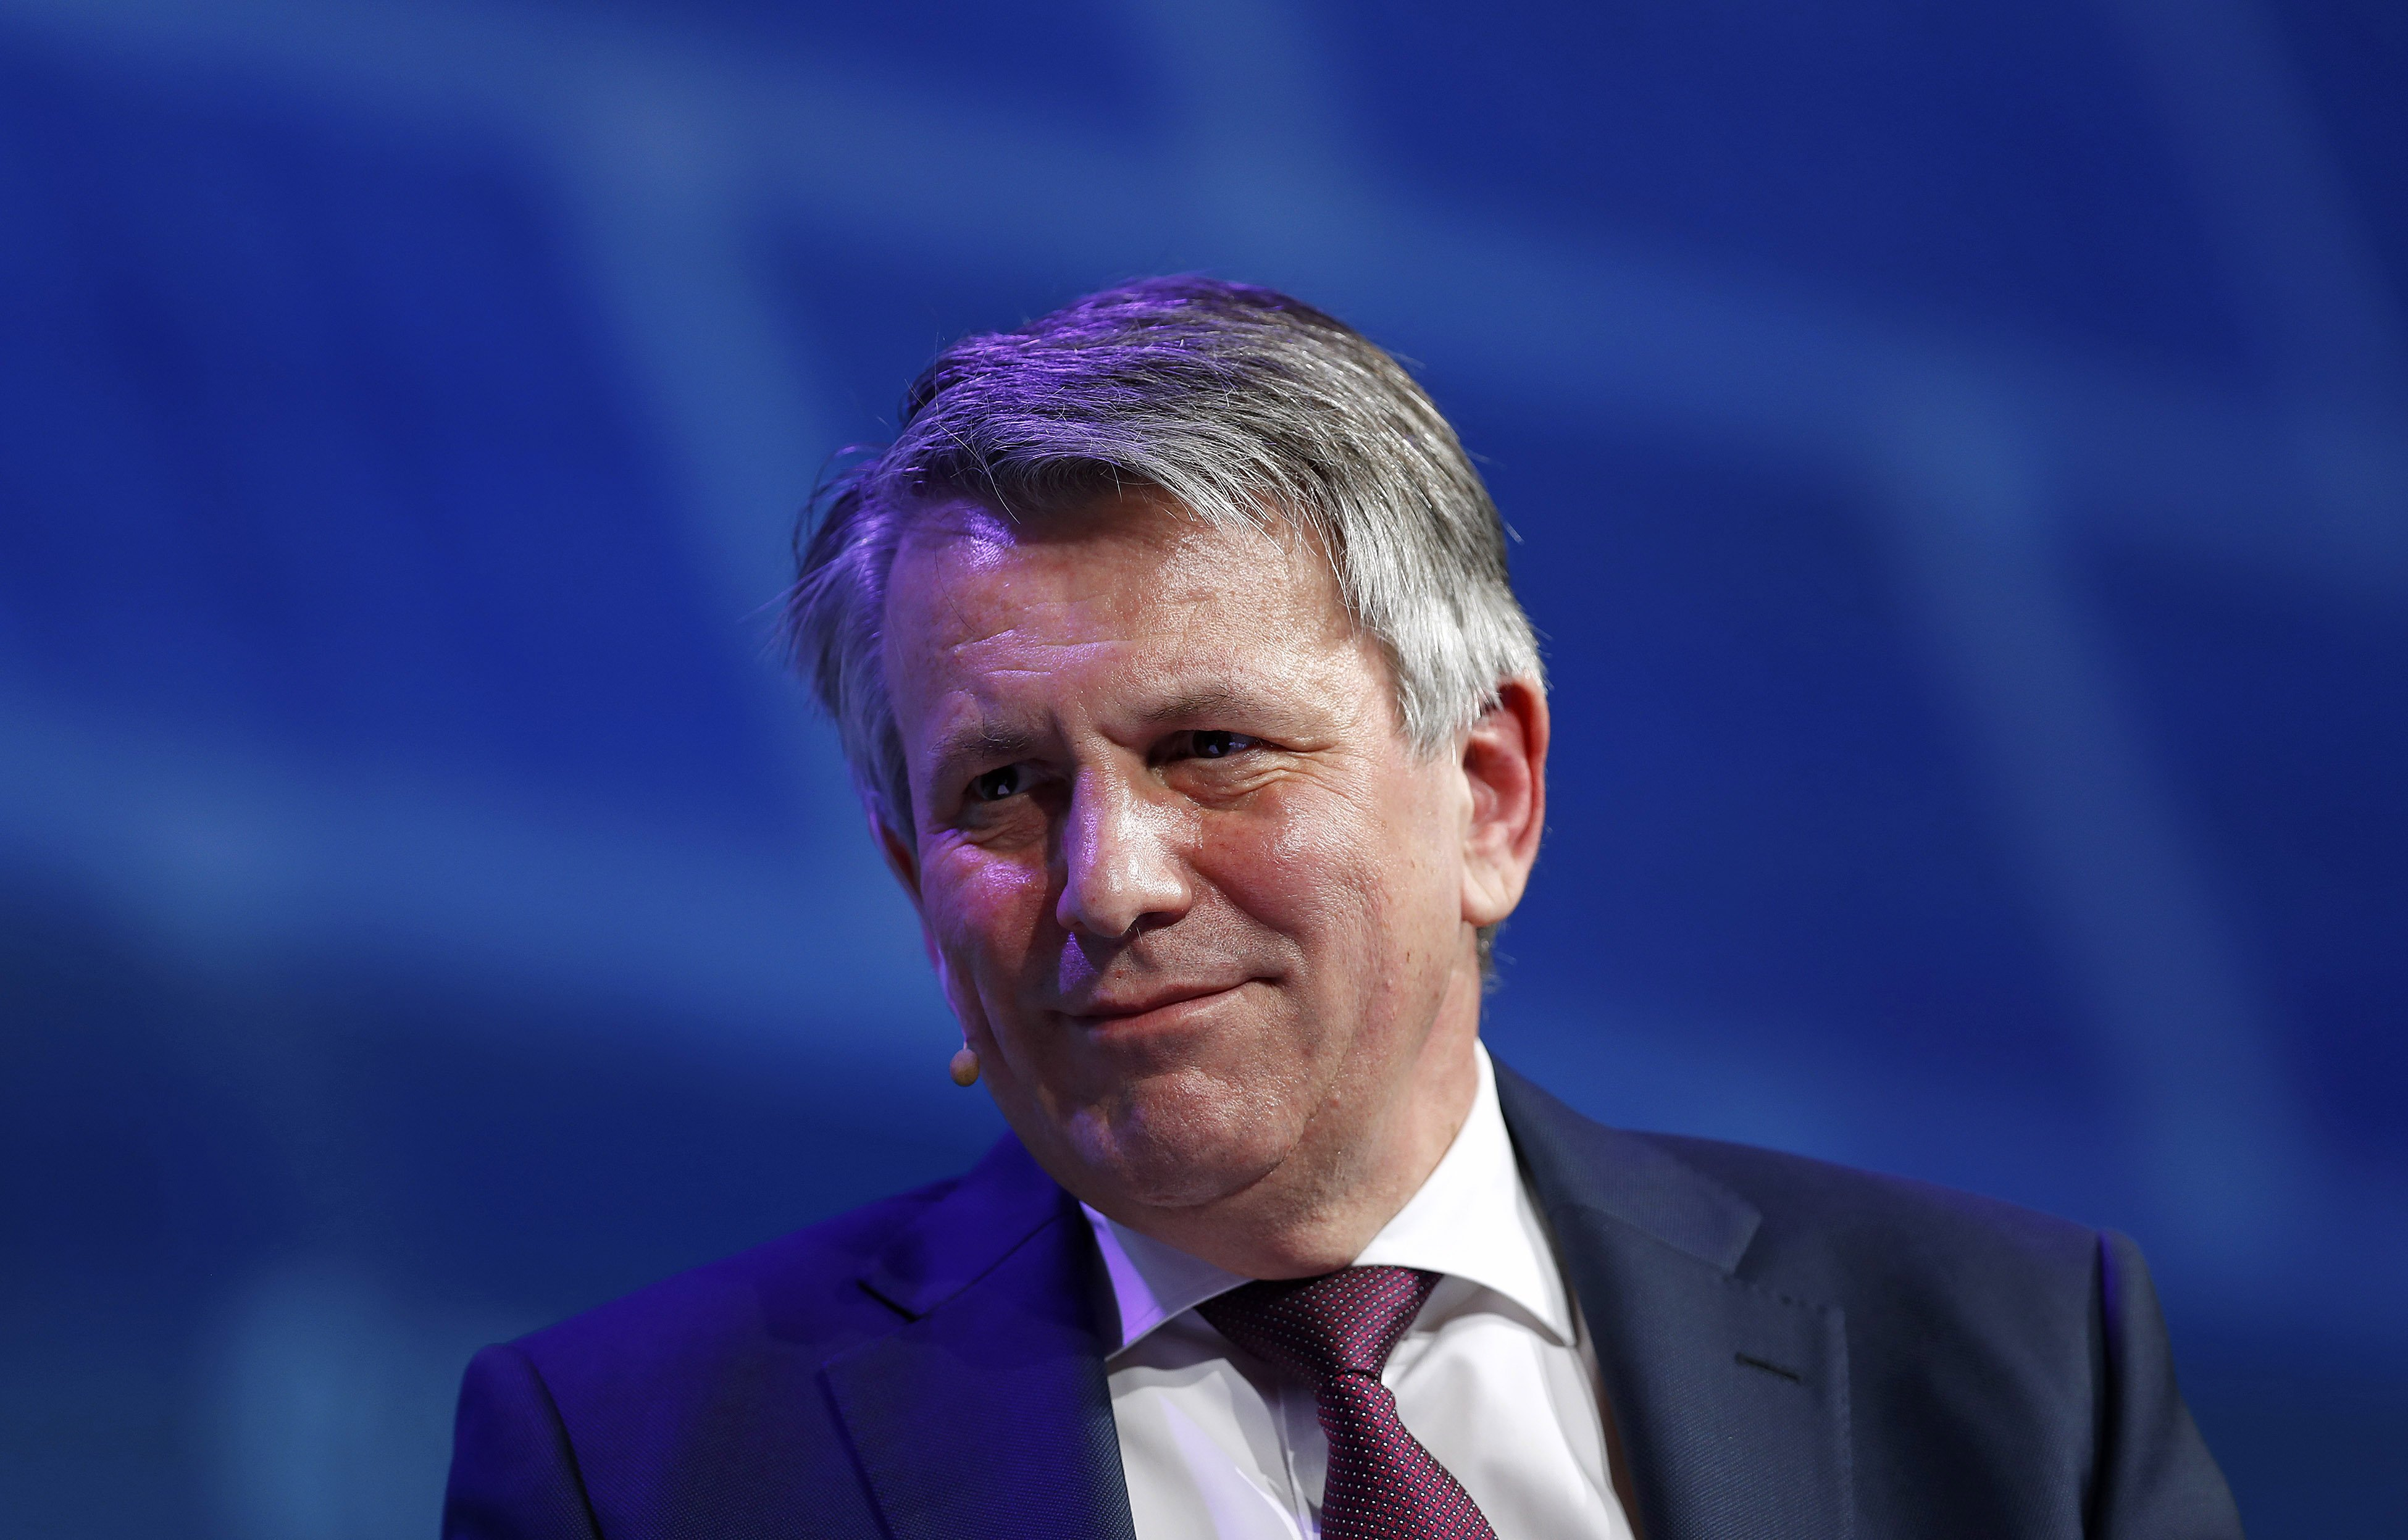 Shell CEO says climate change is real, but energy demand growth is 'unstoppable'